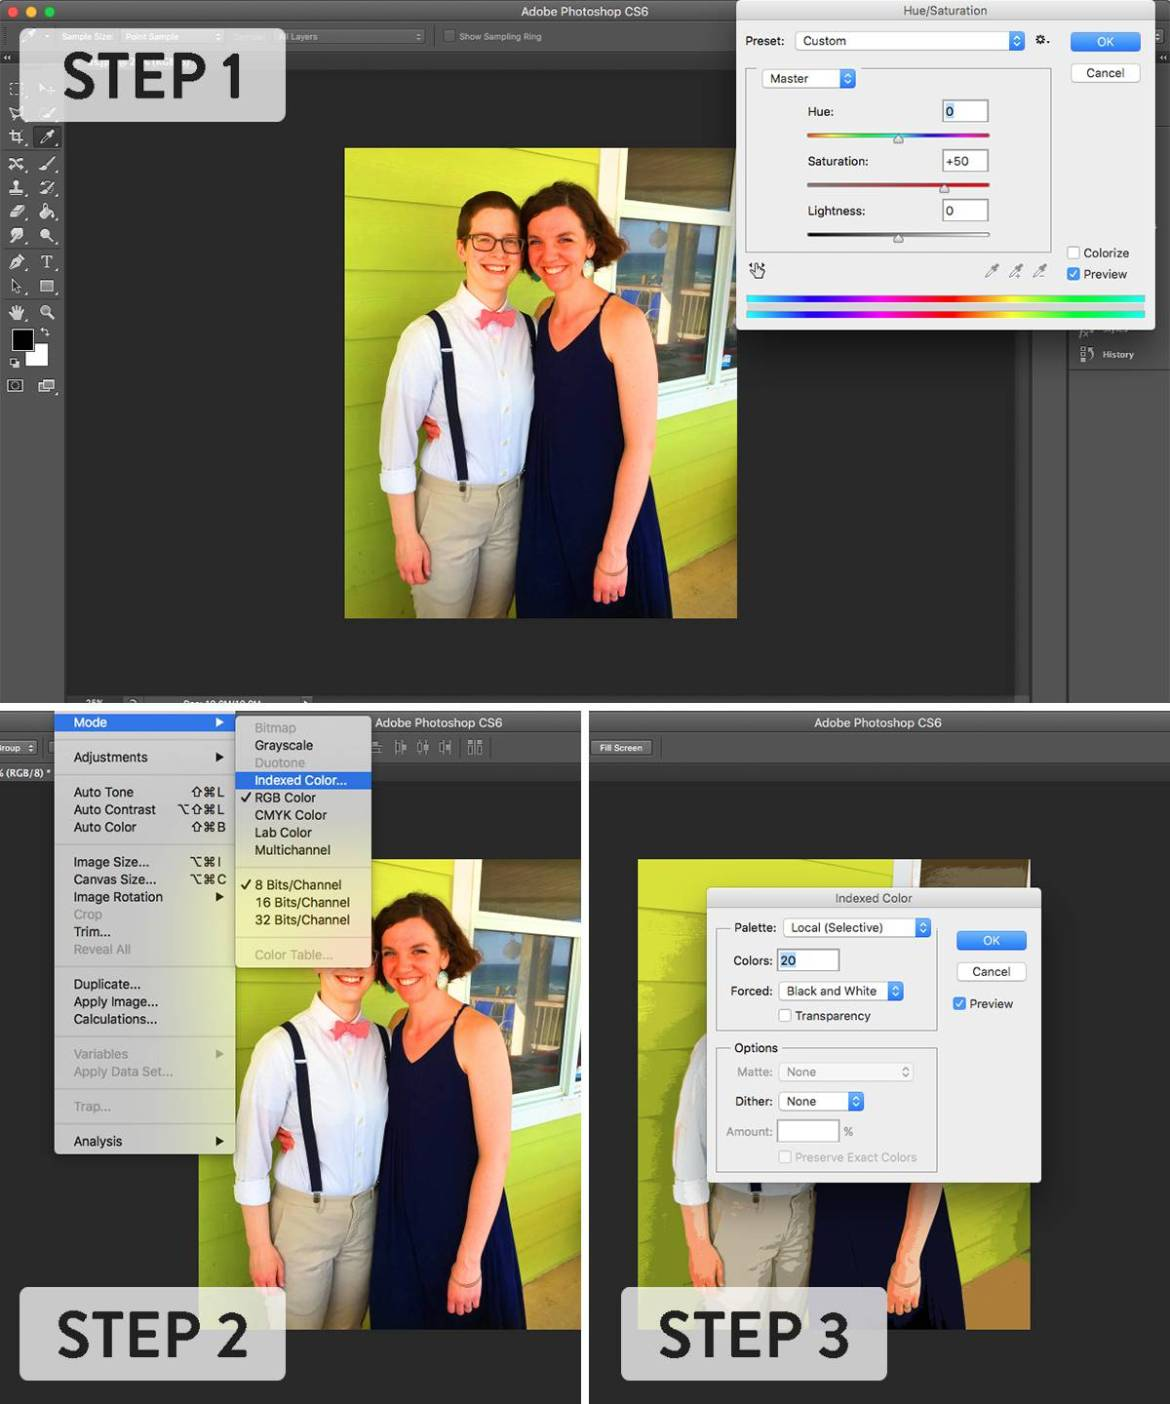 How to use Photoshop to flatten colors in an image